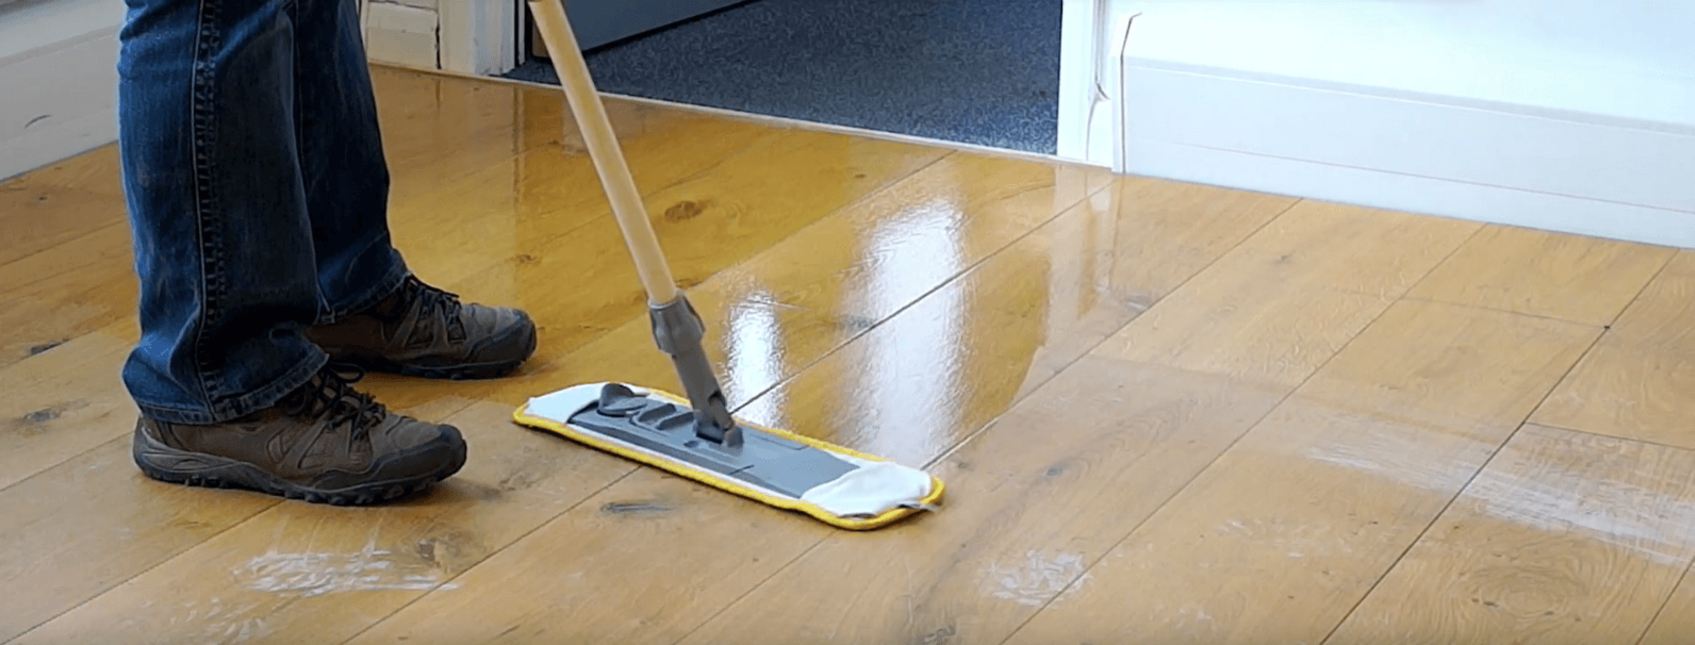 How Do I Safely Clean A Wood Floor Jfj Expert Advice